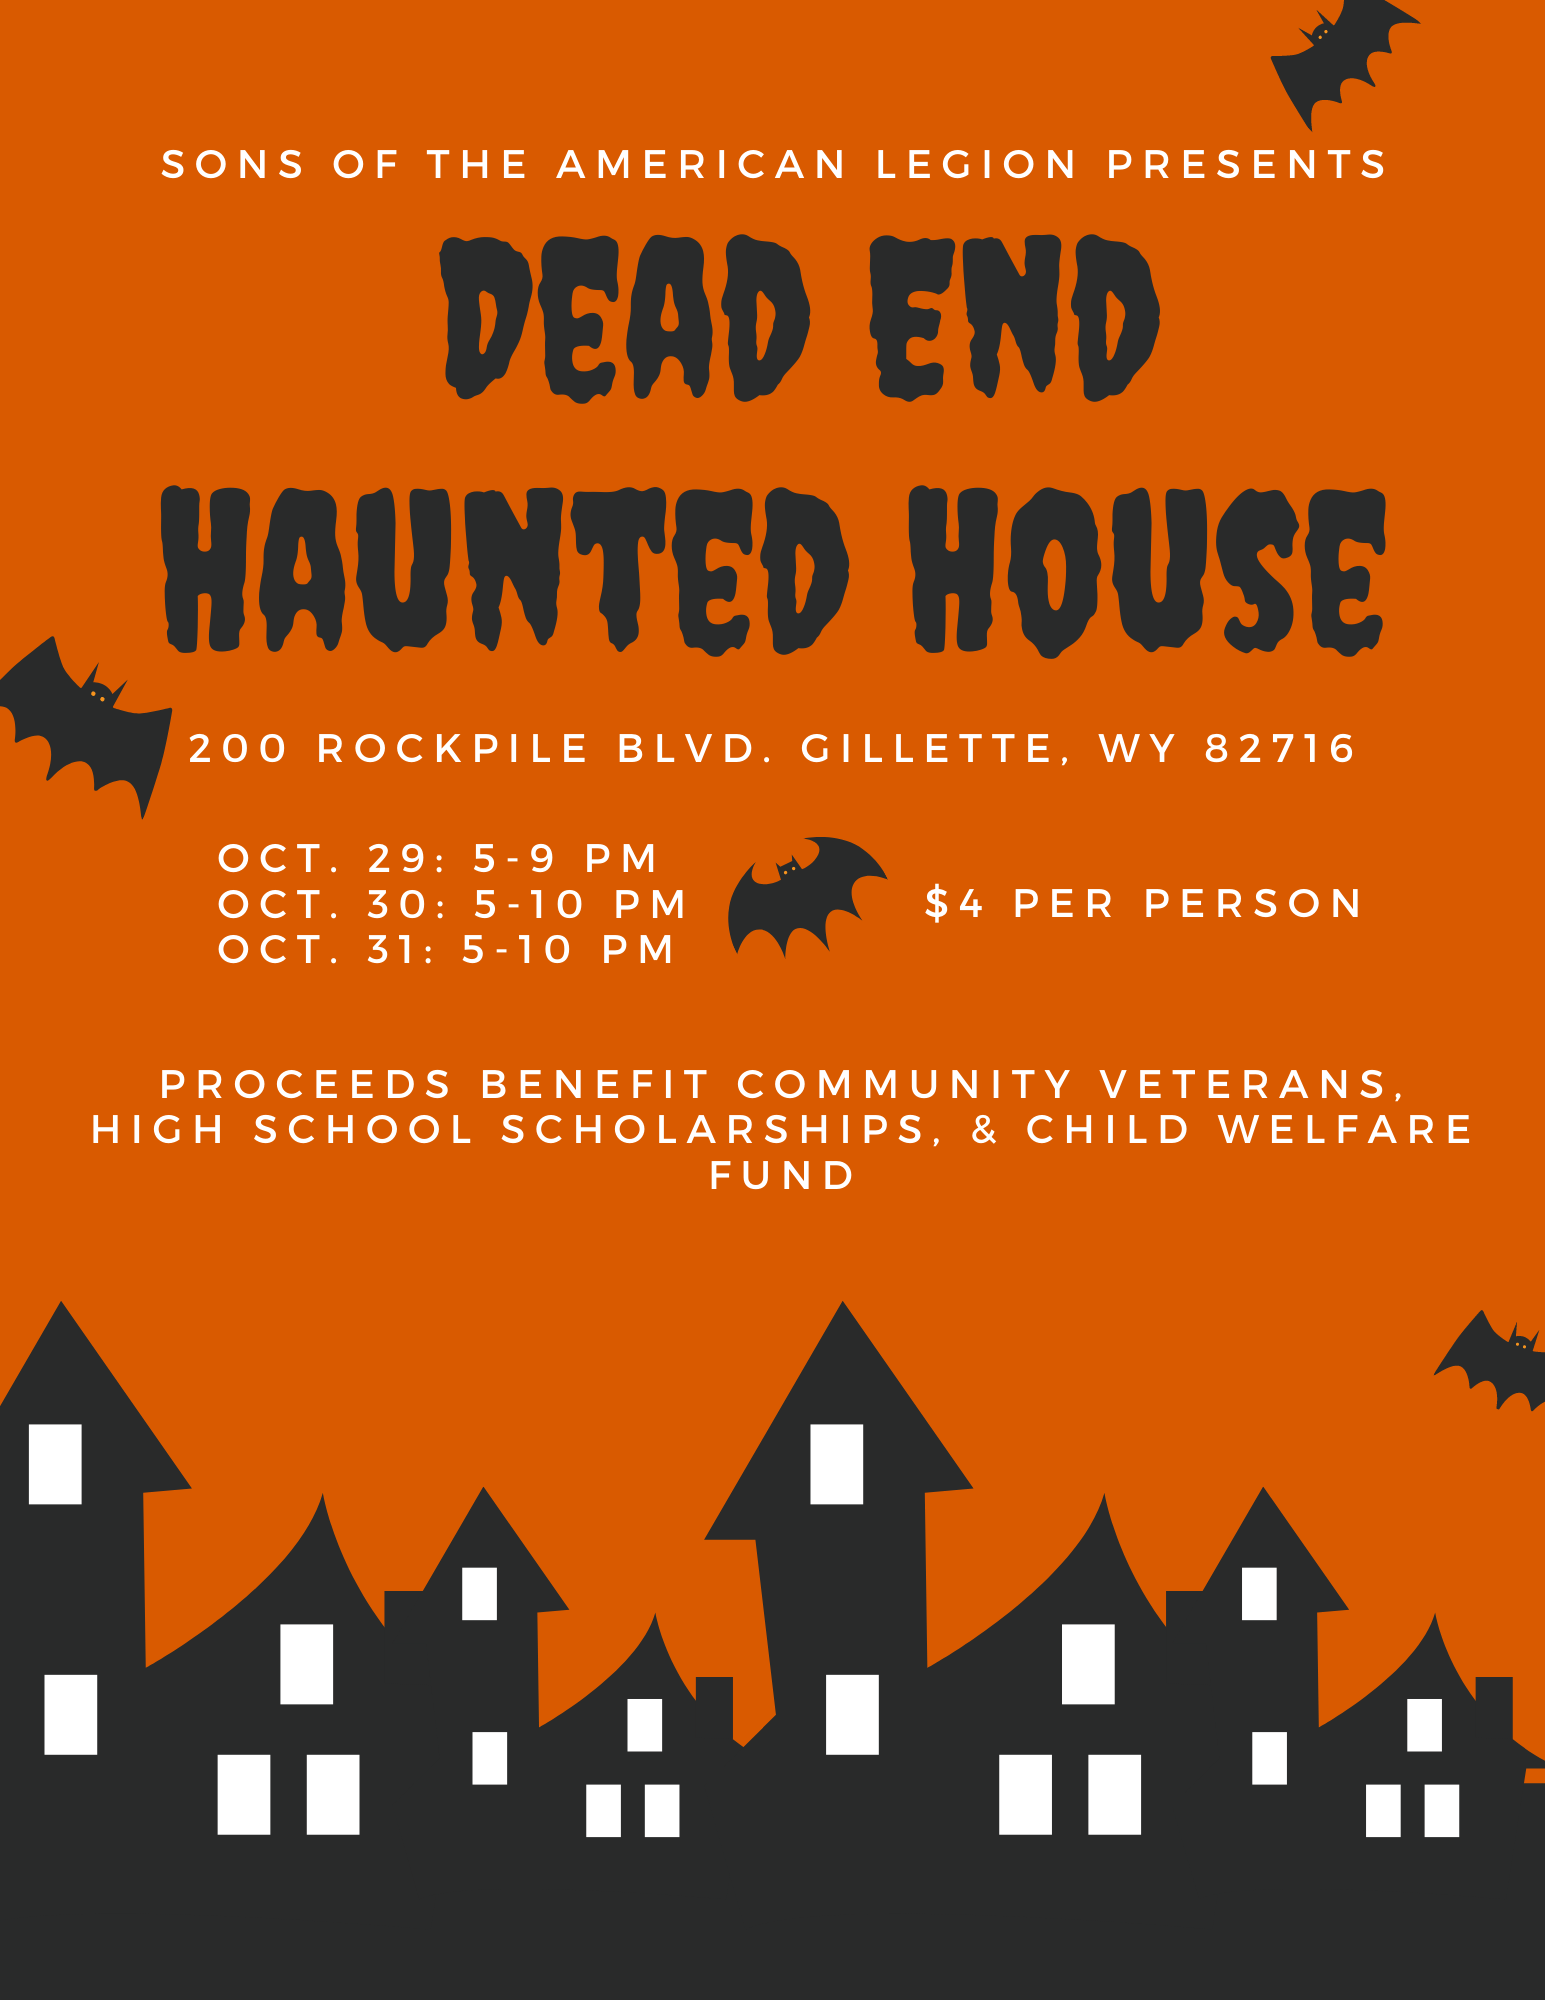 Sons of the American Legion presents the 11th Annual Dead End Haunted House, October 29-31.